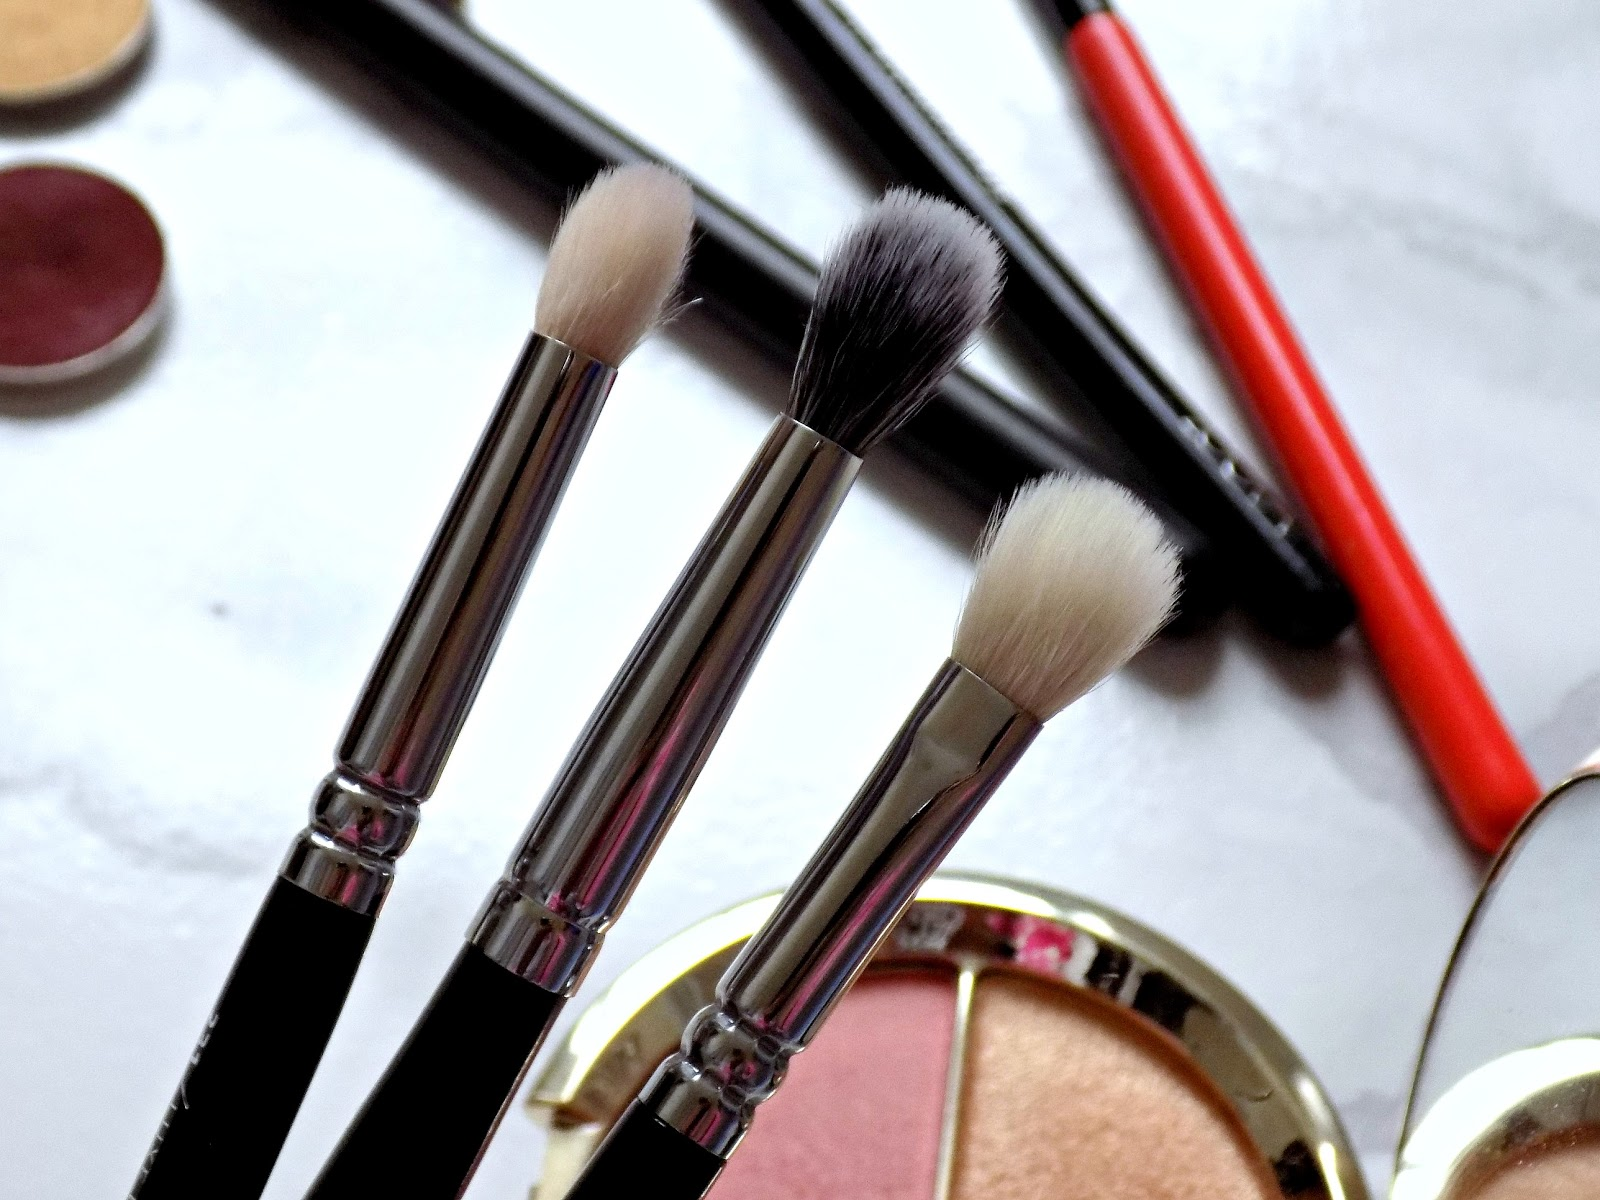 Zoeva eye makeup brushes